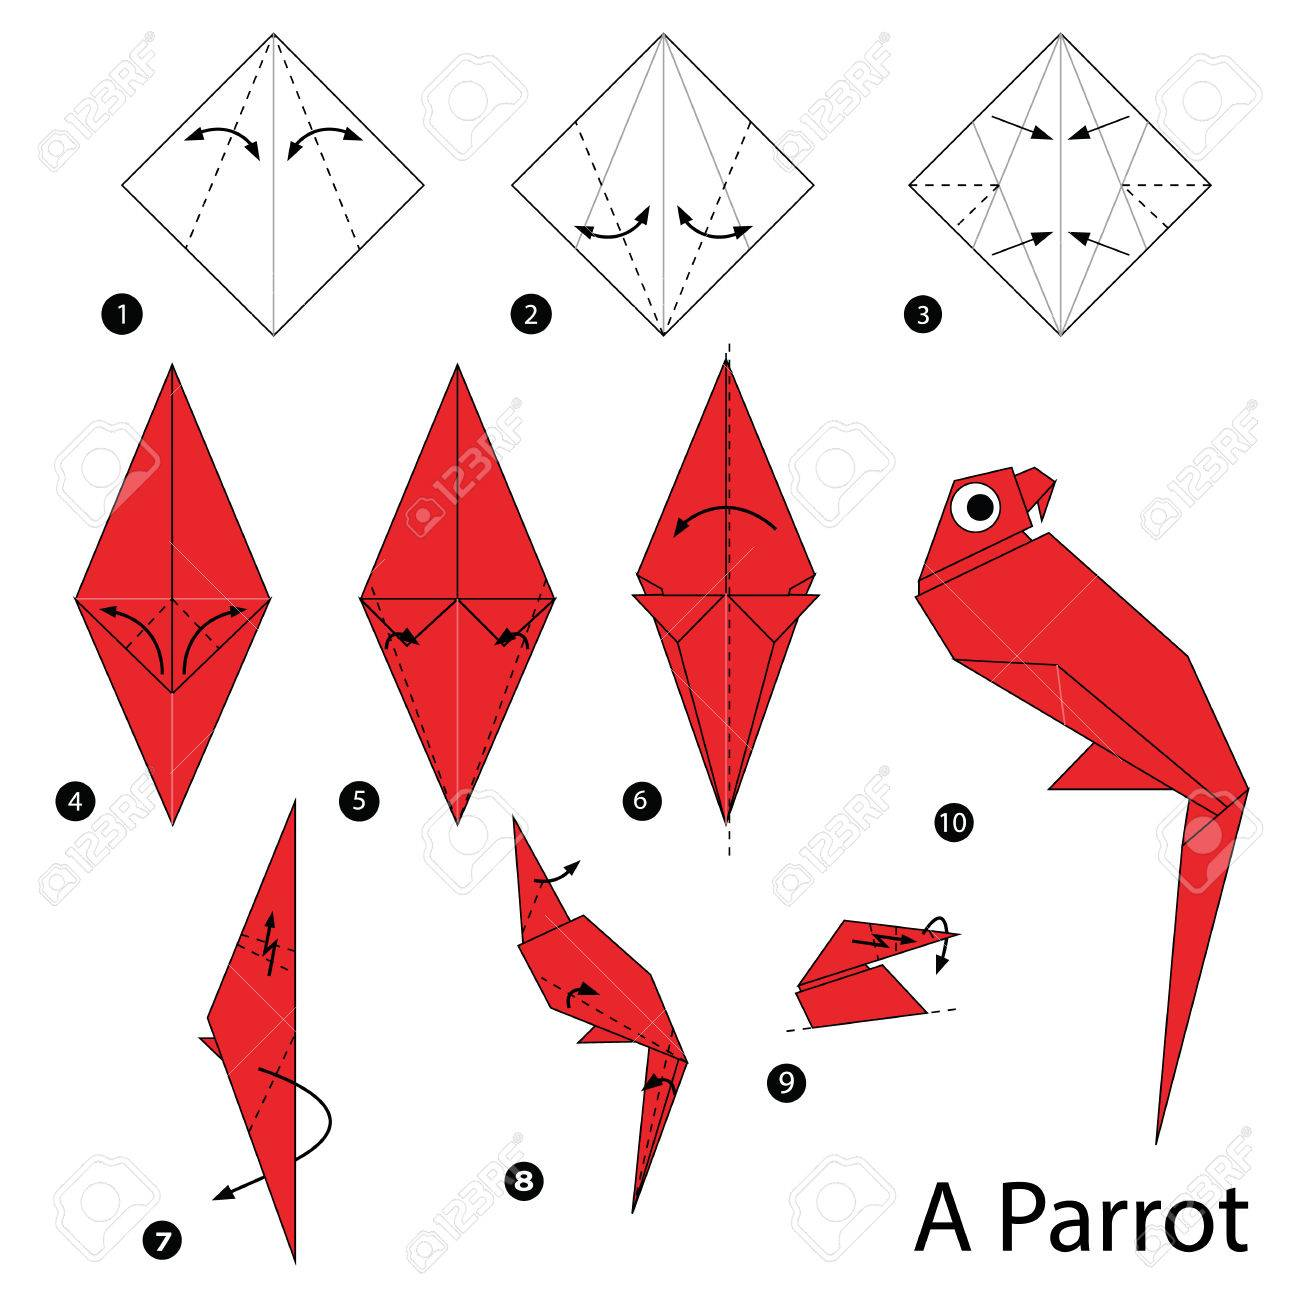 Step By Step Instructions How To Make Origami A Parrot Royalty Free